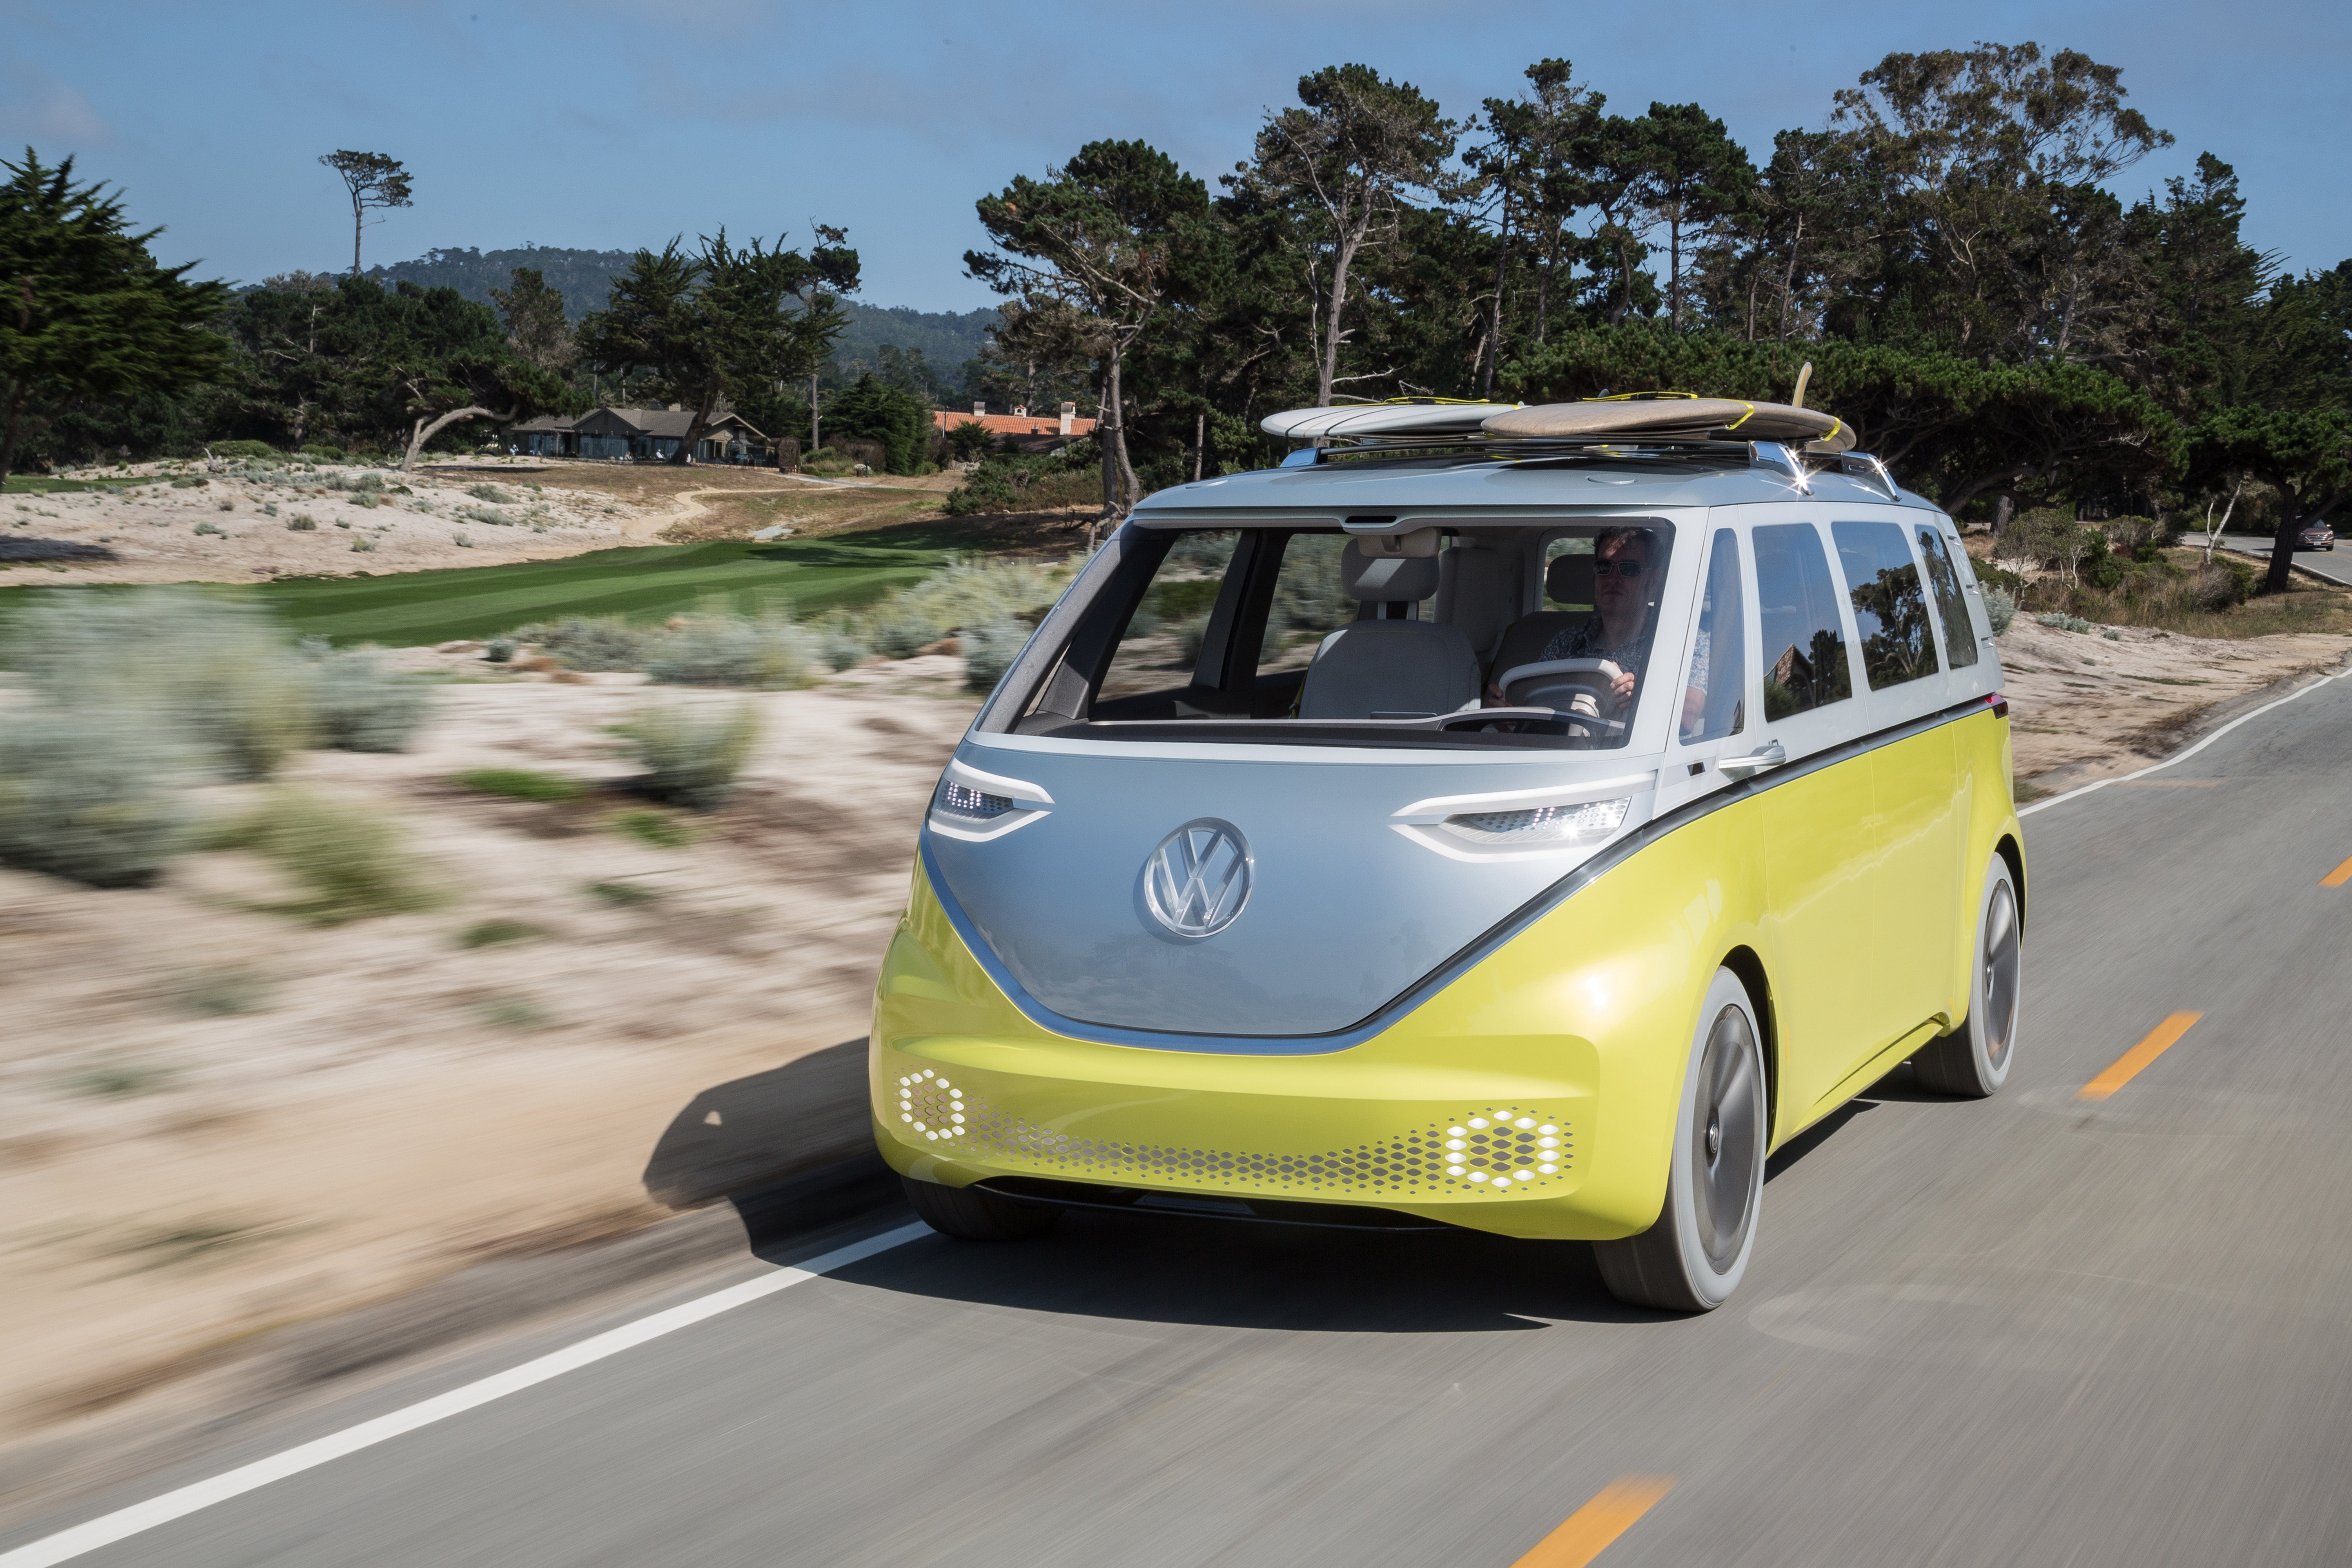 Volkswagen's Electric-Car Program Is About to Blow Right Past Tesla | The Motley Fool